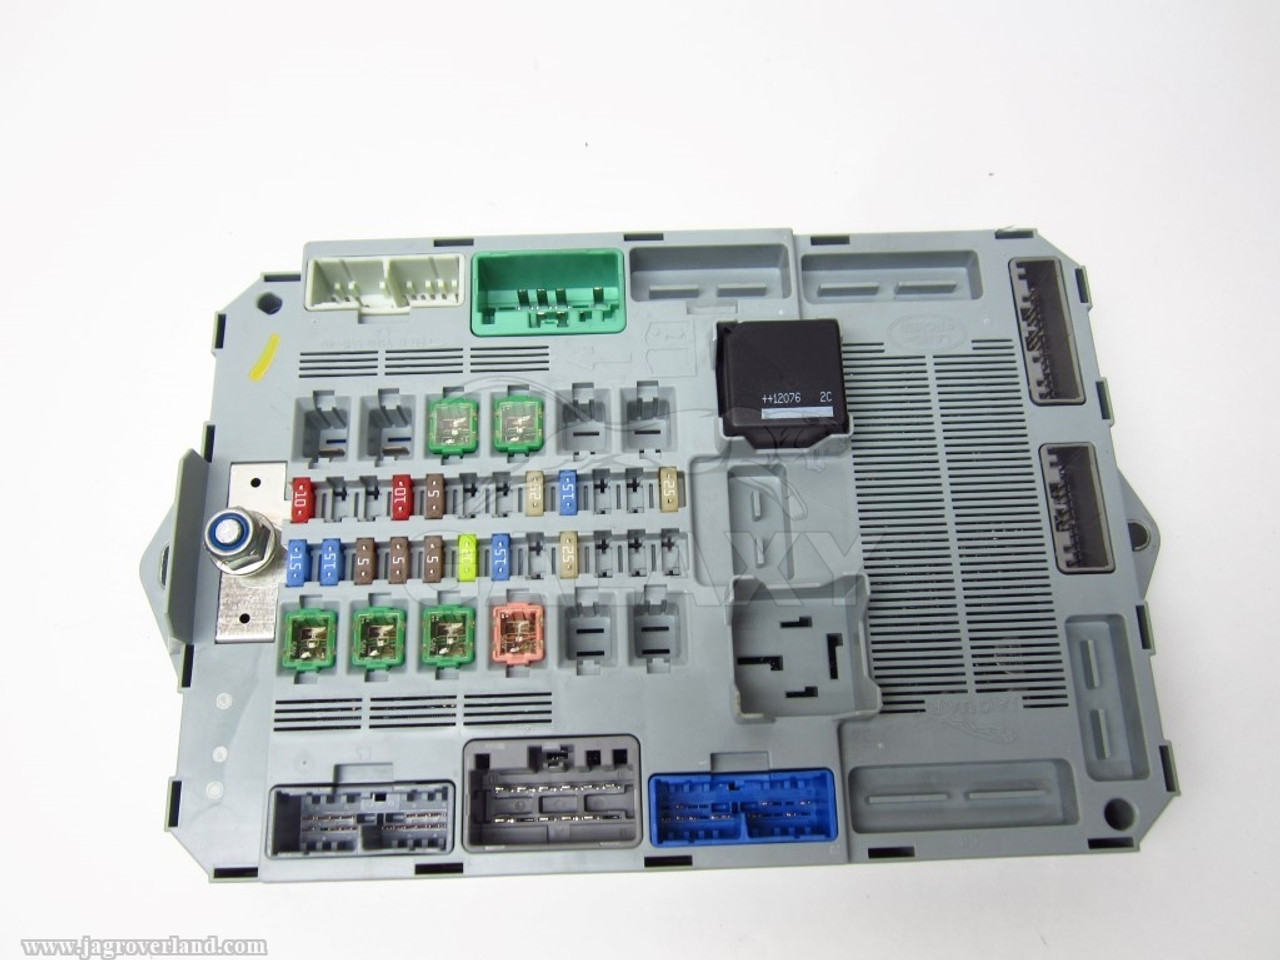 12 xf xfr trunk fuse box smart junction oem c2z23345 cx23 14d628 ag cx23z14d645ae [ 1280 x 960 Pixel ]